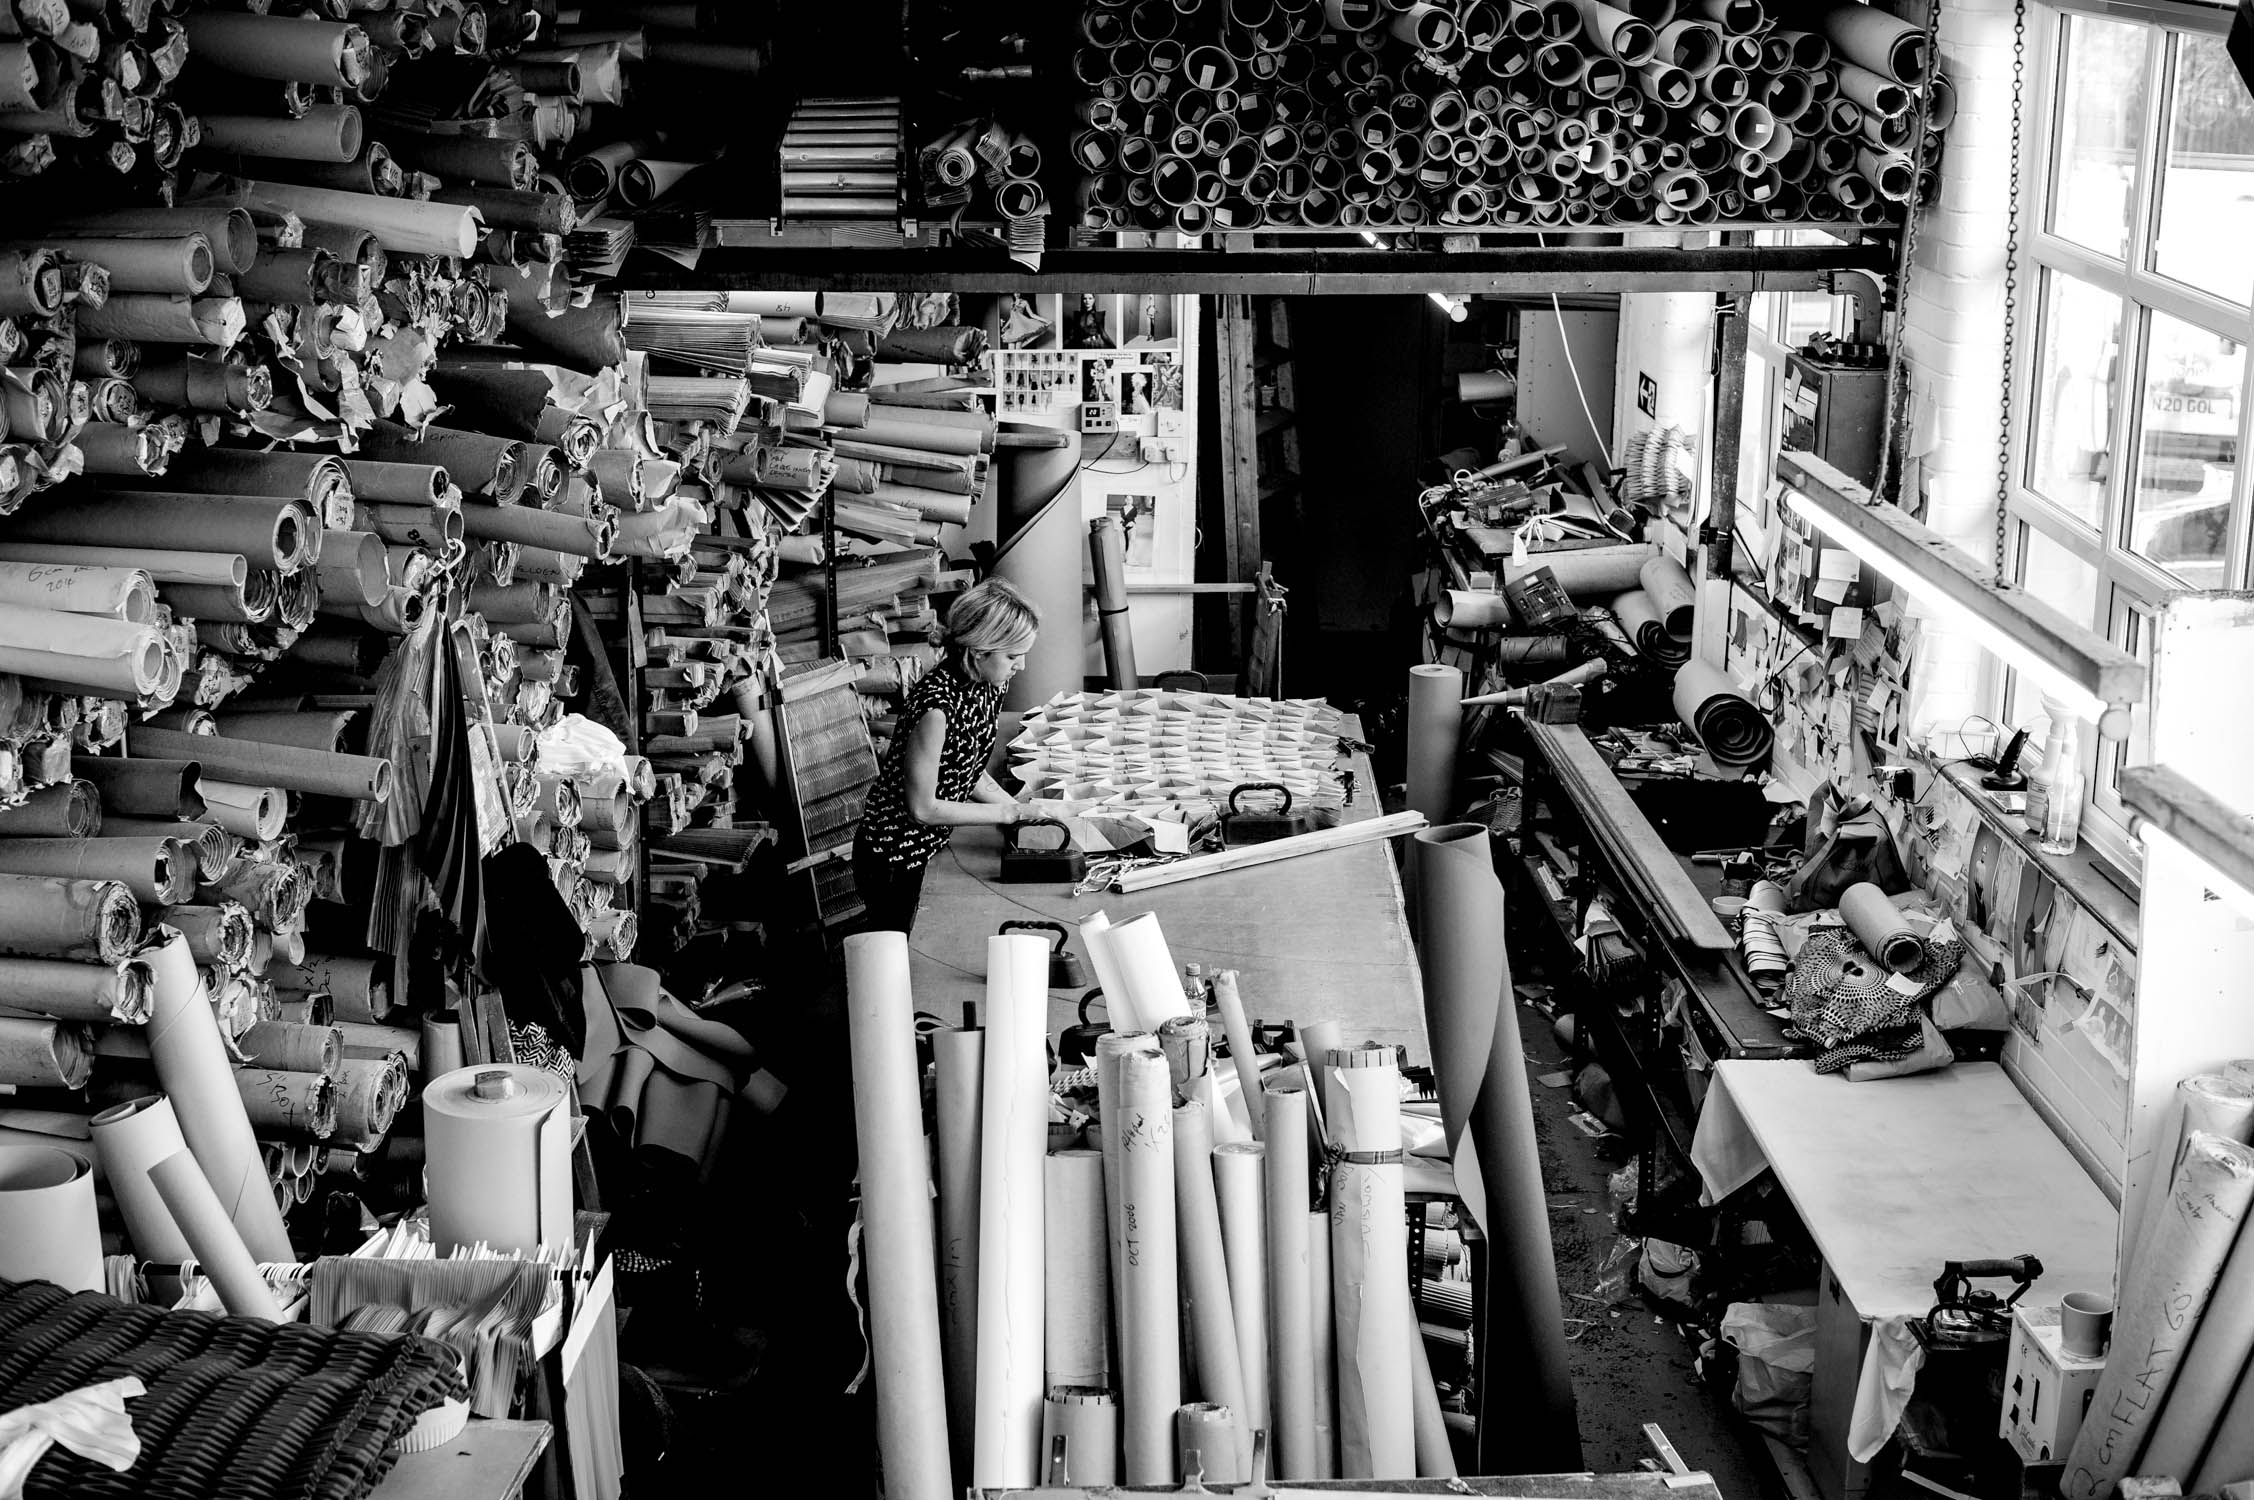 Jule Waibel in her studio, Unfolding materials and objects